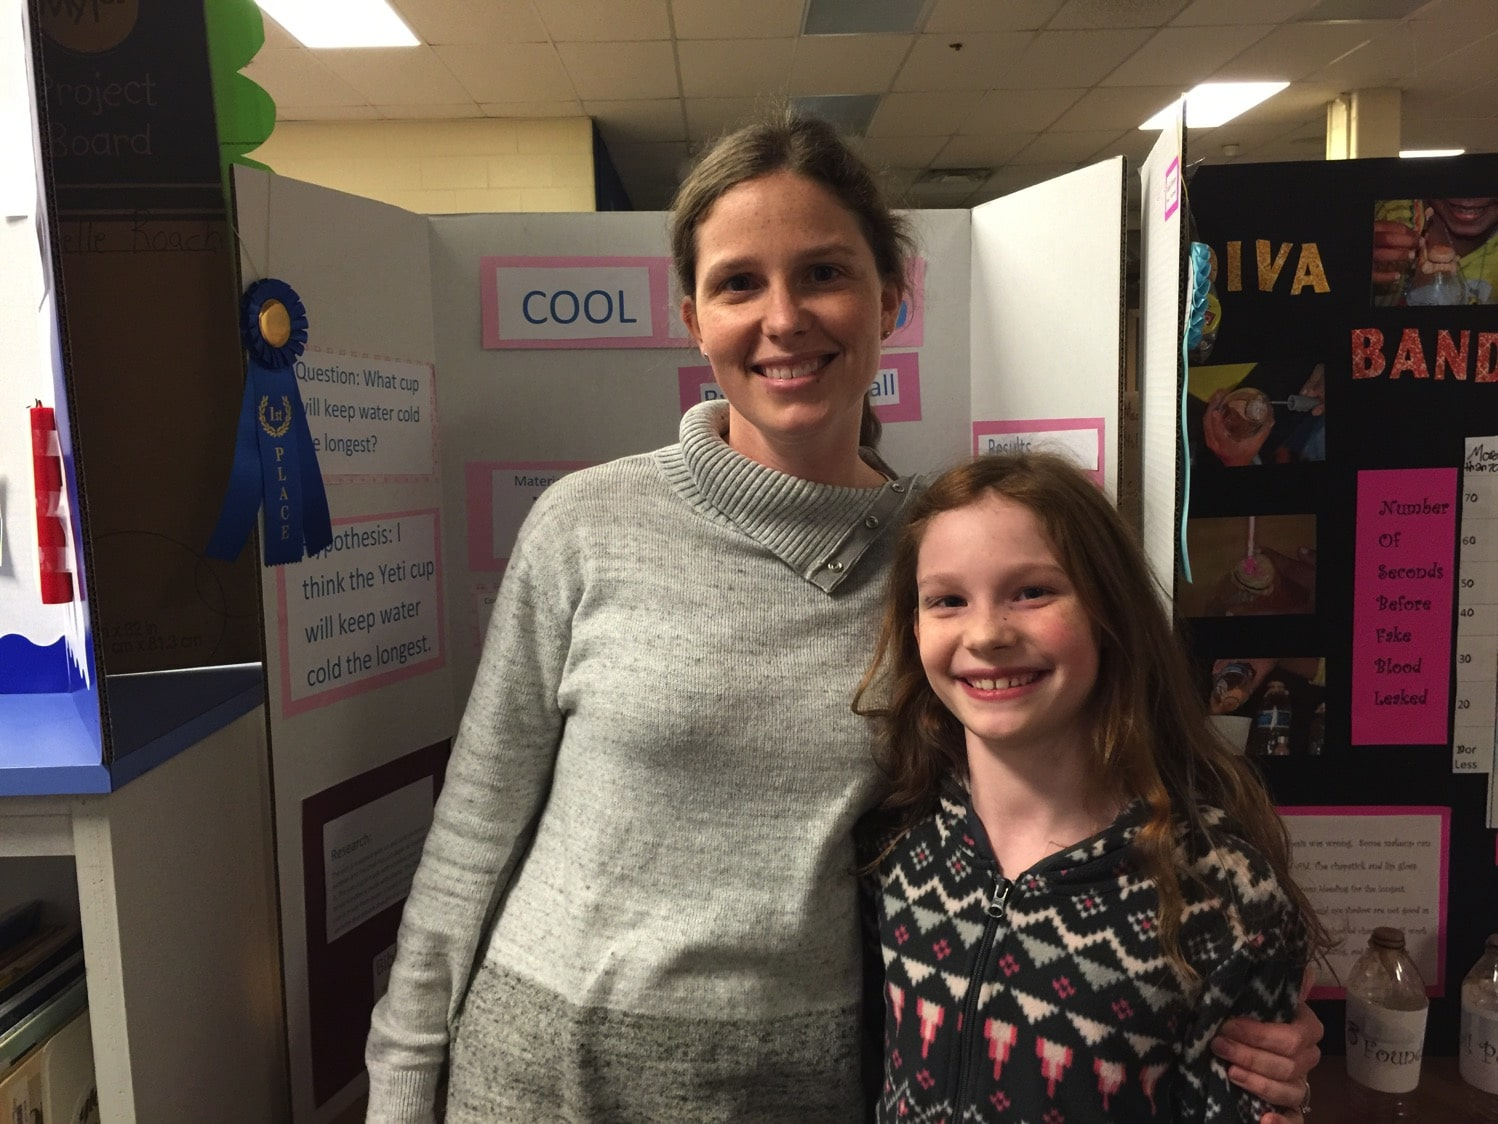 Science Fair Keeping Cold Water Cold the Longest Elementary Experiment